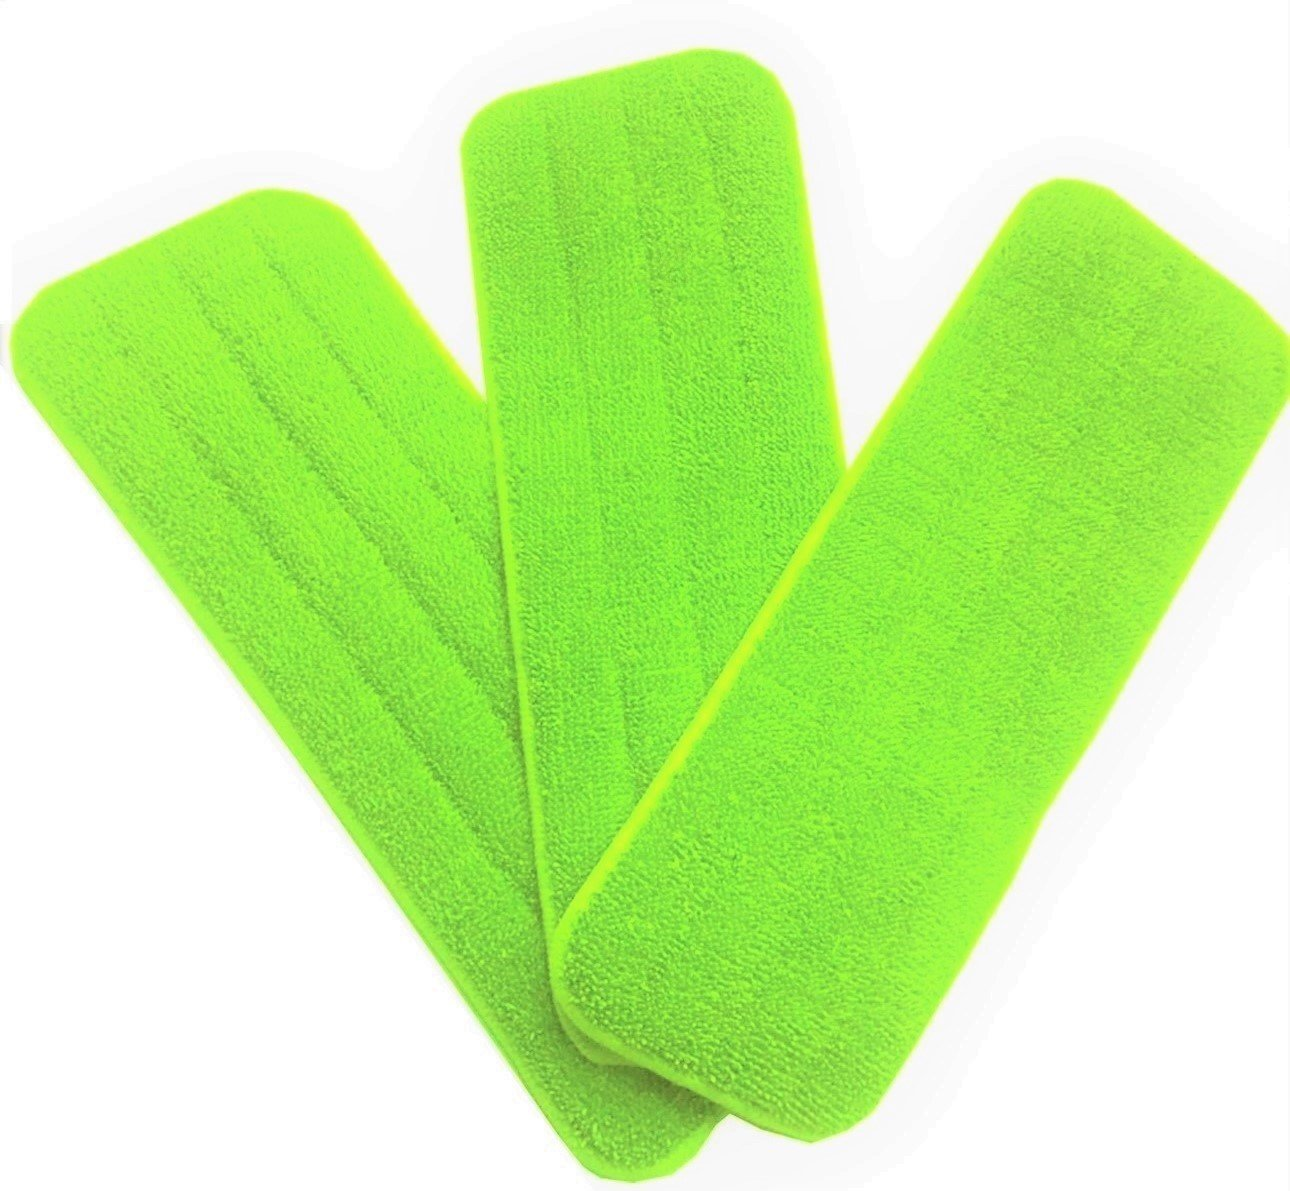 Washable Microfiber Mop Head (3 Pack) - Microfiber Replacement Mop Pads 16 x 5.5 Inches for Cleaning of Wet or Dry Floors - Professional Home/Office Cleaning Supplies, Green Color